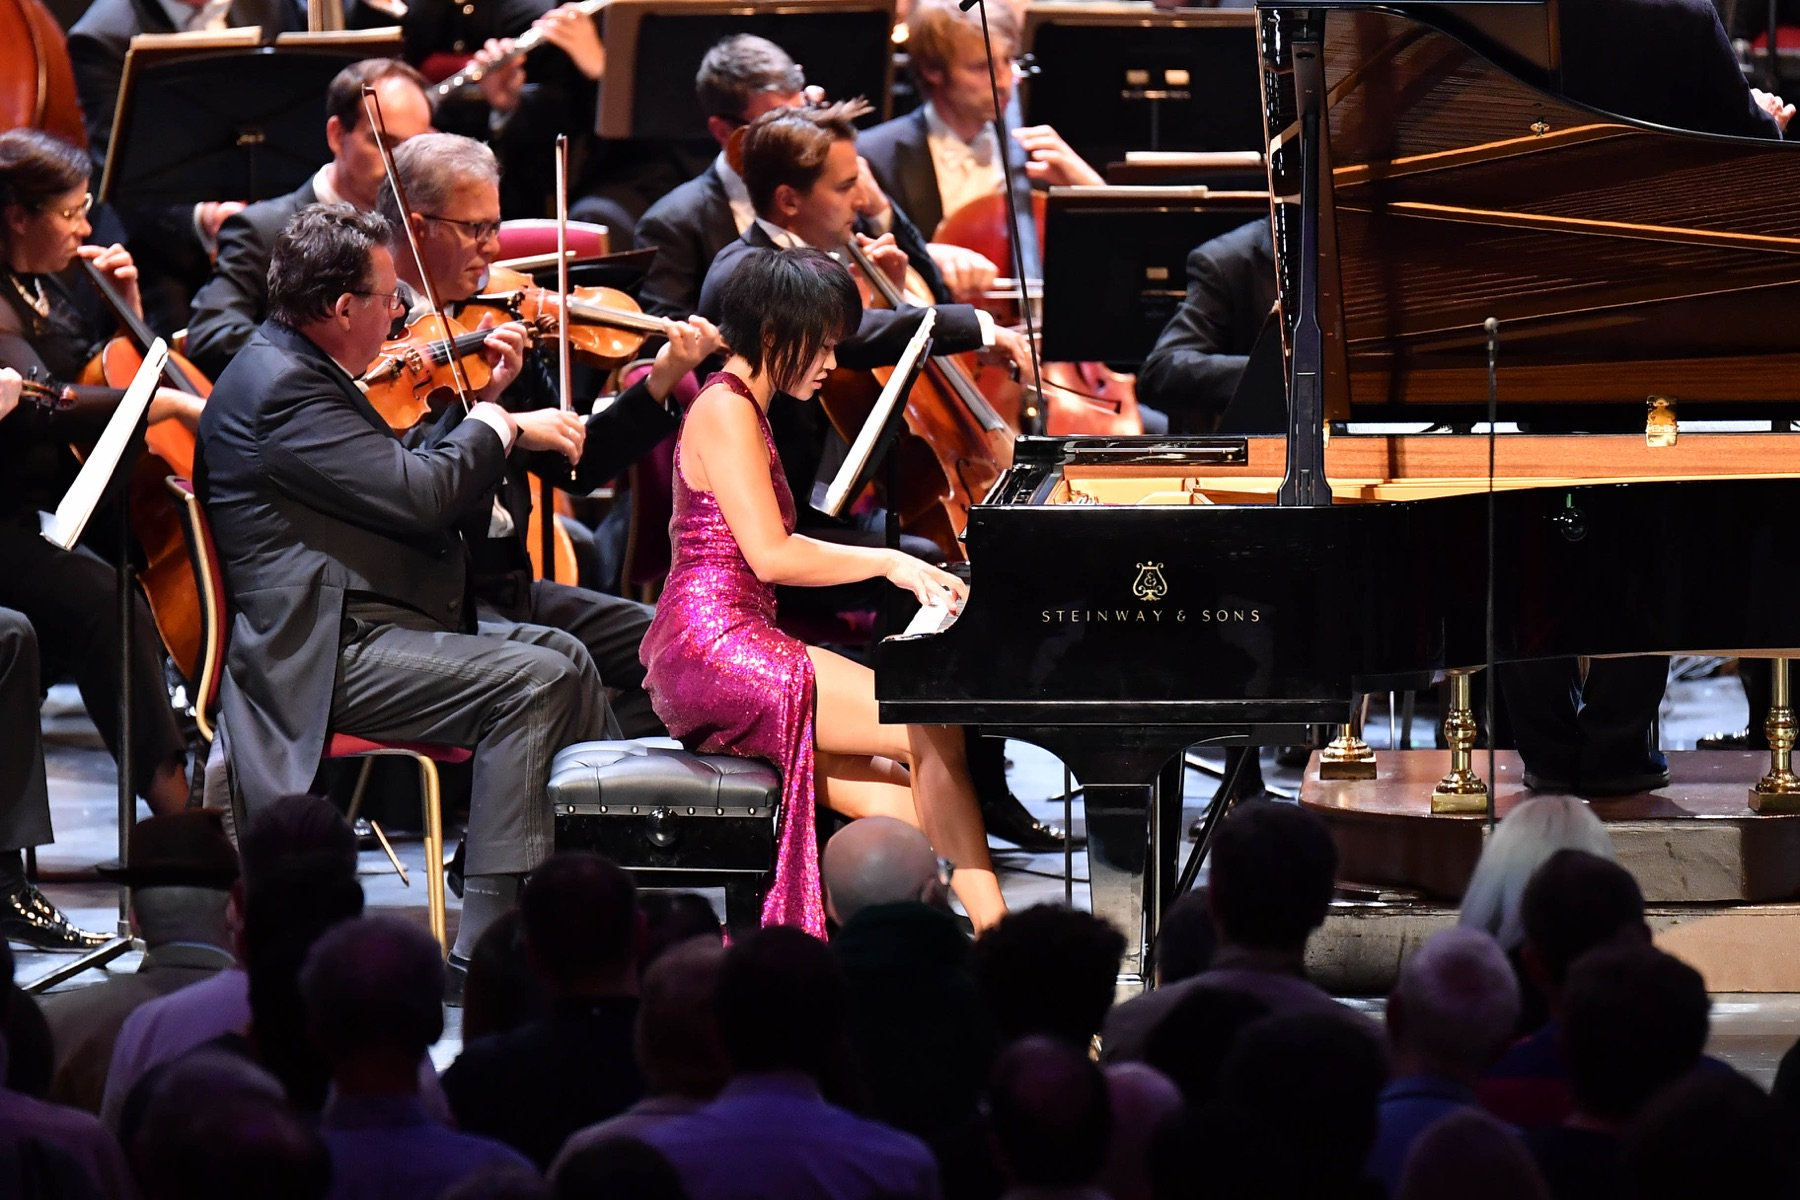 loved playing with the @StaatskapelleDD and Maestro Chung. It was fun to revisit Rachmaninov #3 with them. It was a highlight to listen to their Brahms Symphony No.2 in the second half of the concert, which carries such warmth of sound and humanity!